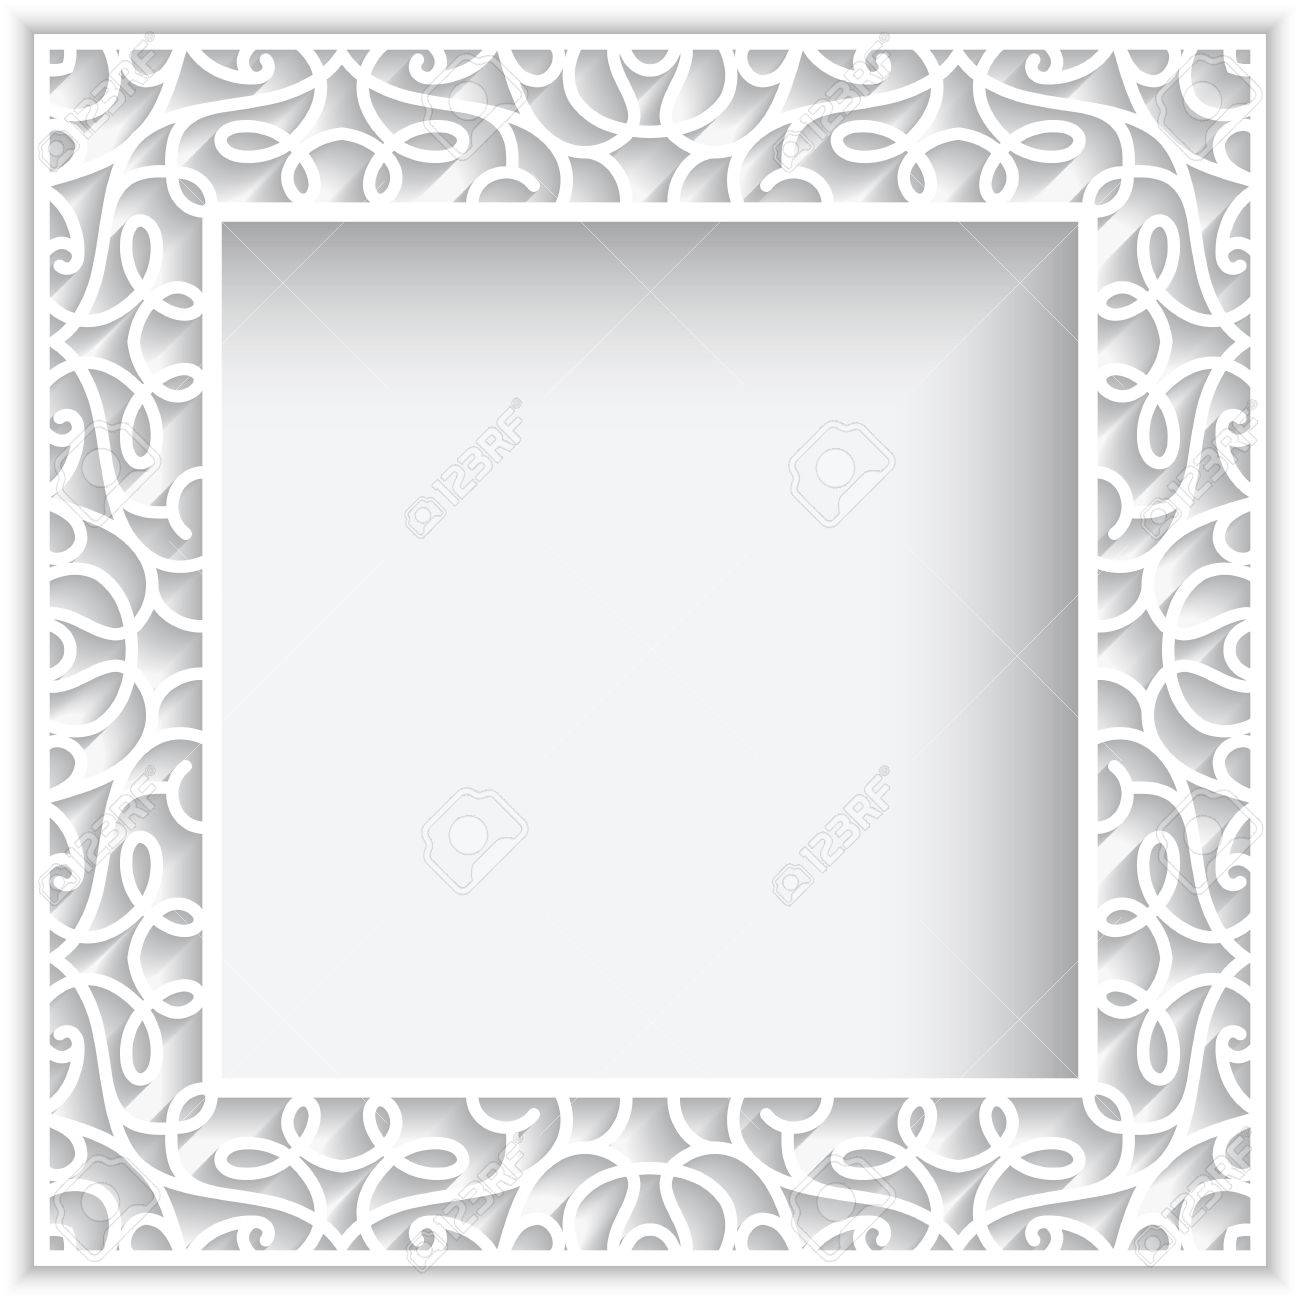 Square Cutout Paper Lace Frame On White Background Royalty Free ...